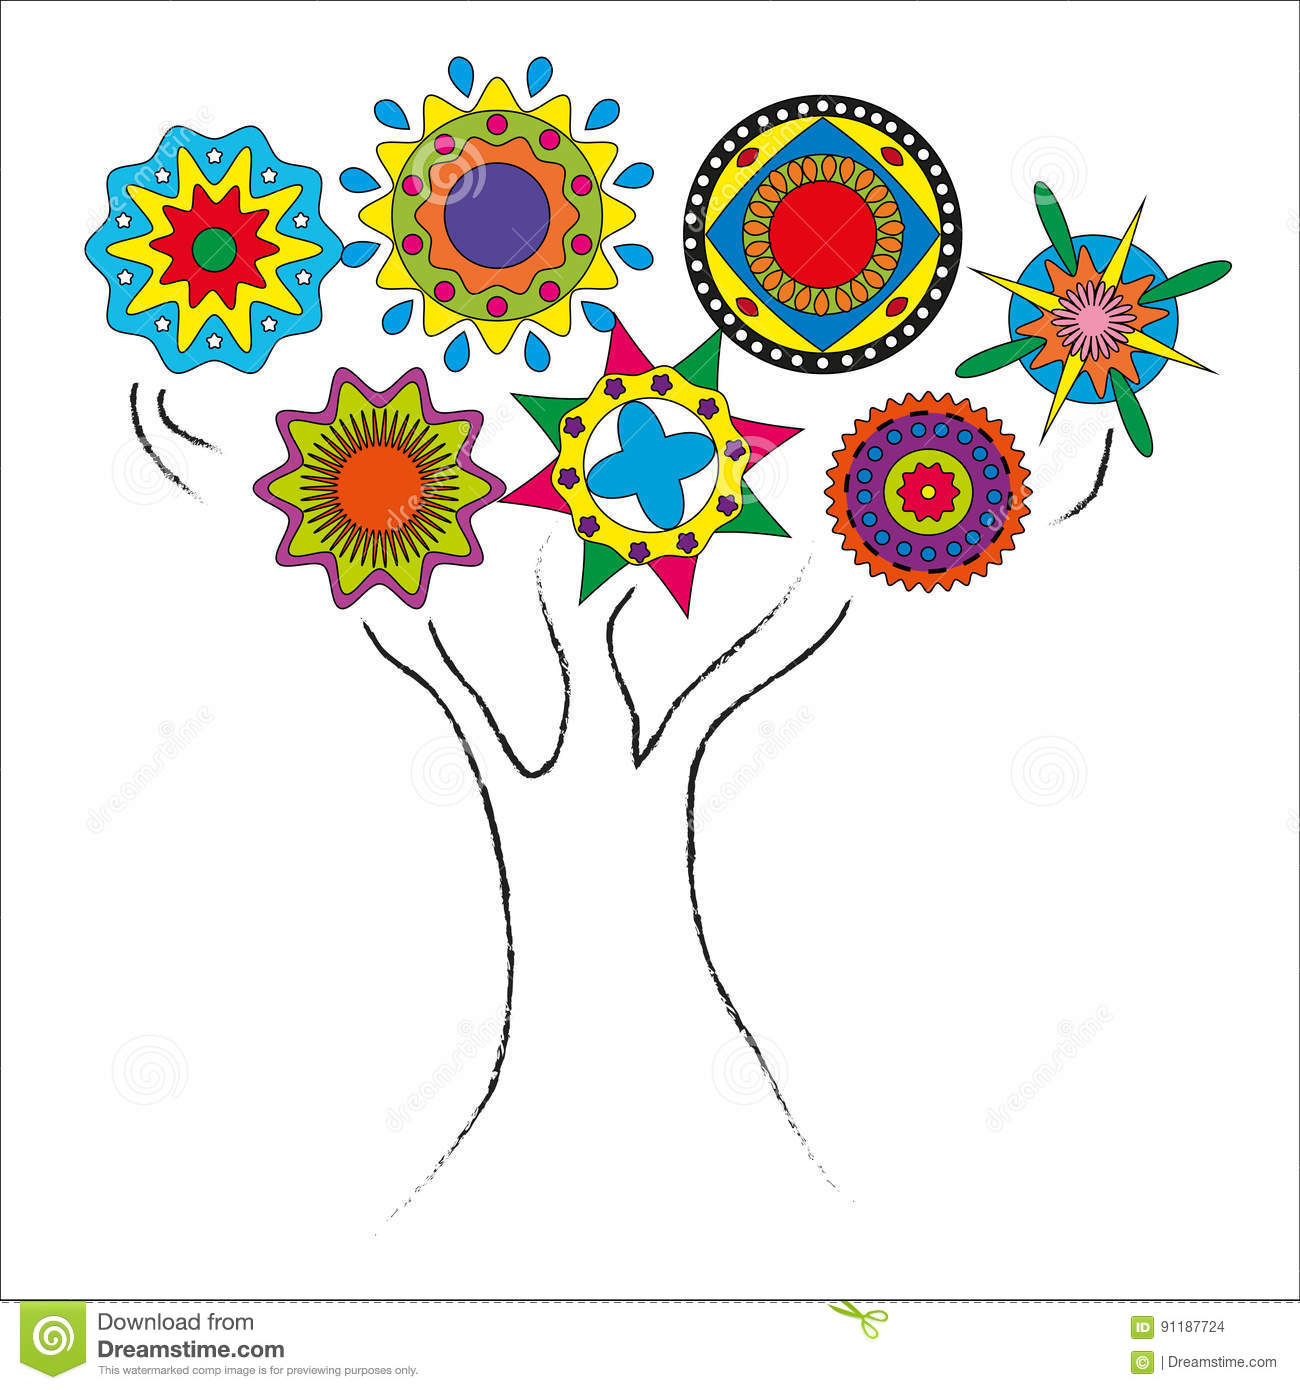 Drawing tree outline with circles the crown stock vector download drawing tree outline with circles the crown stock vector illustration of children overlay izmirmasajfo